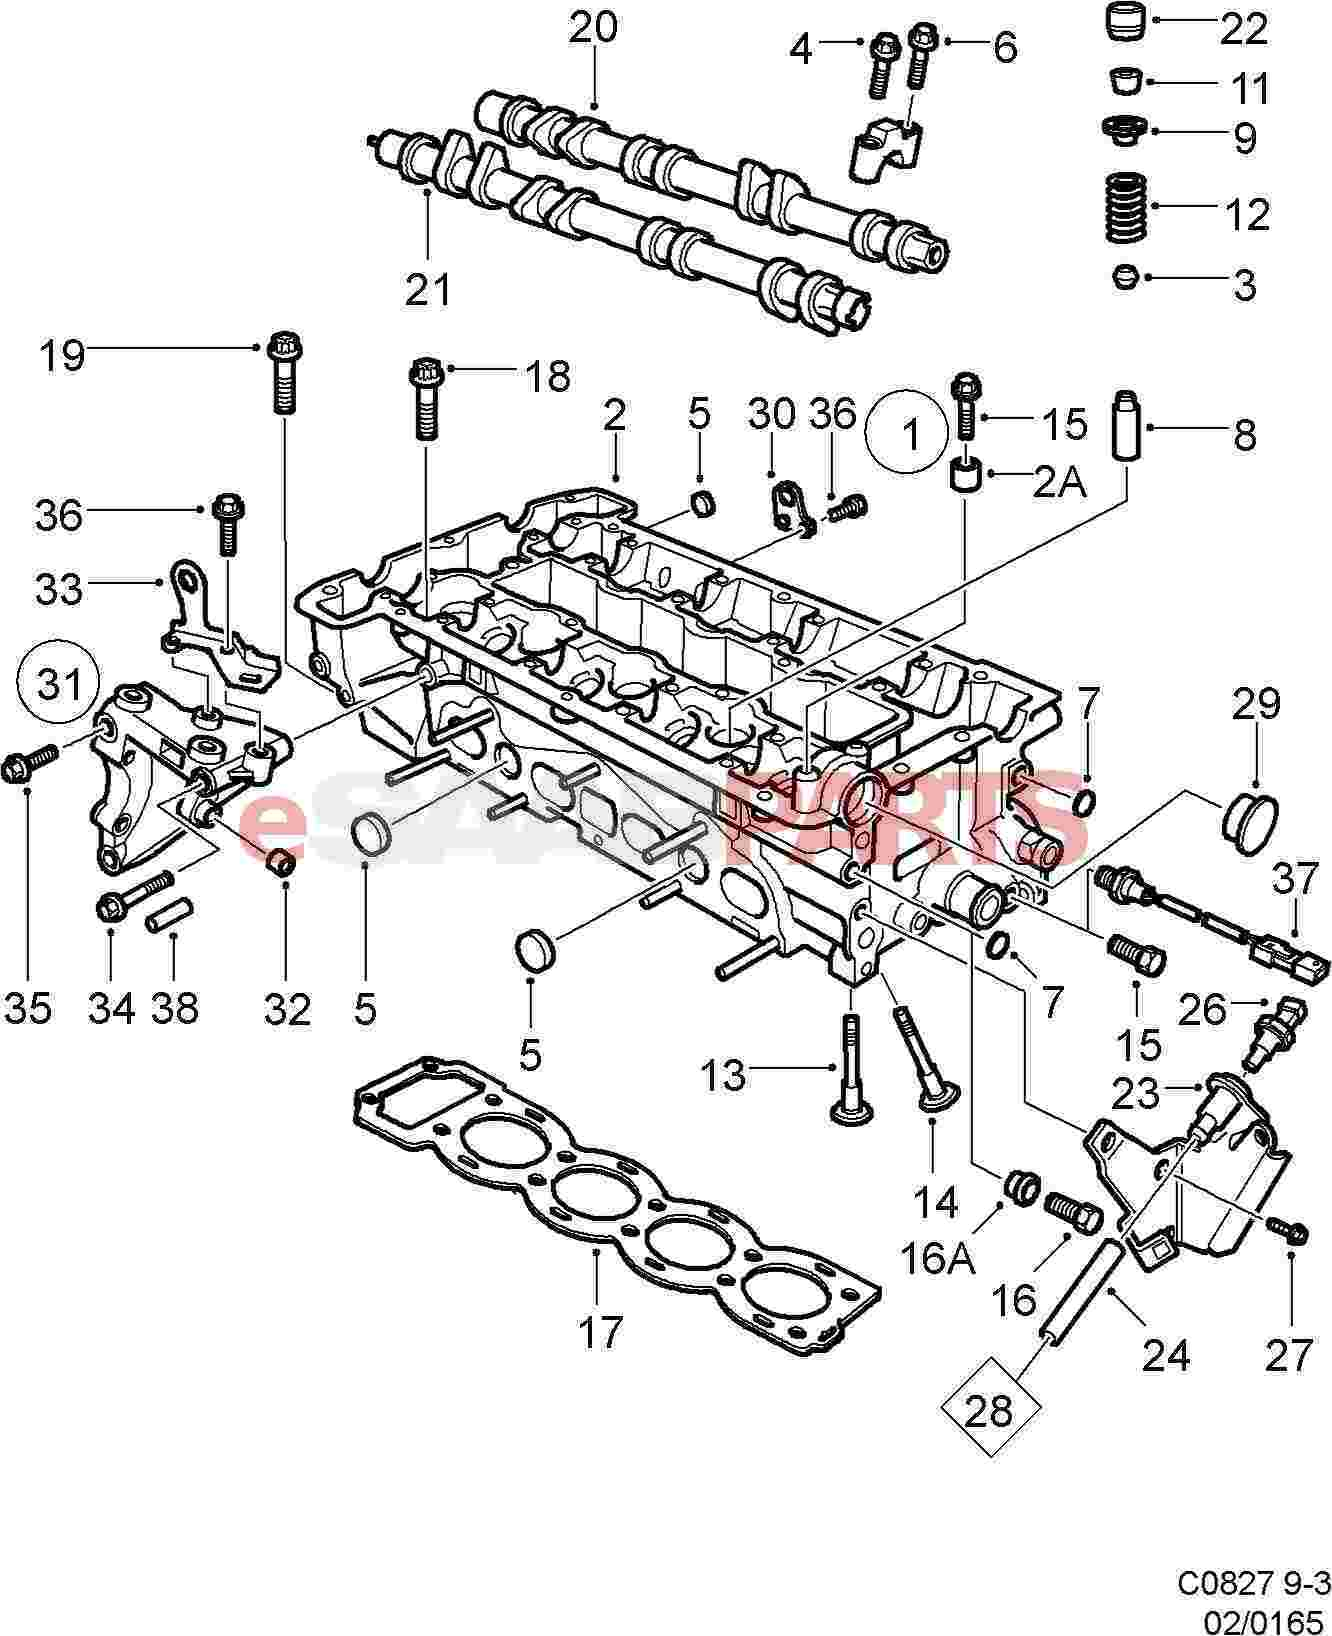 saab 9 3 linear engine free wiring diagram images